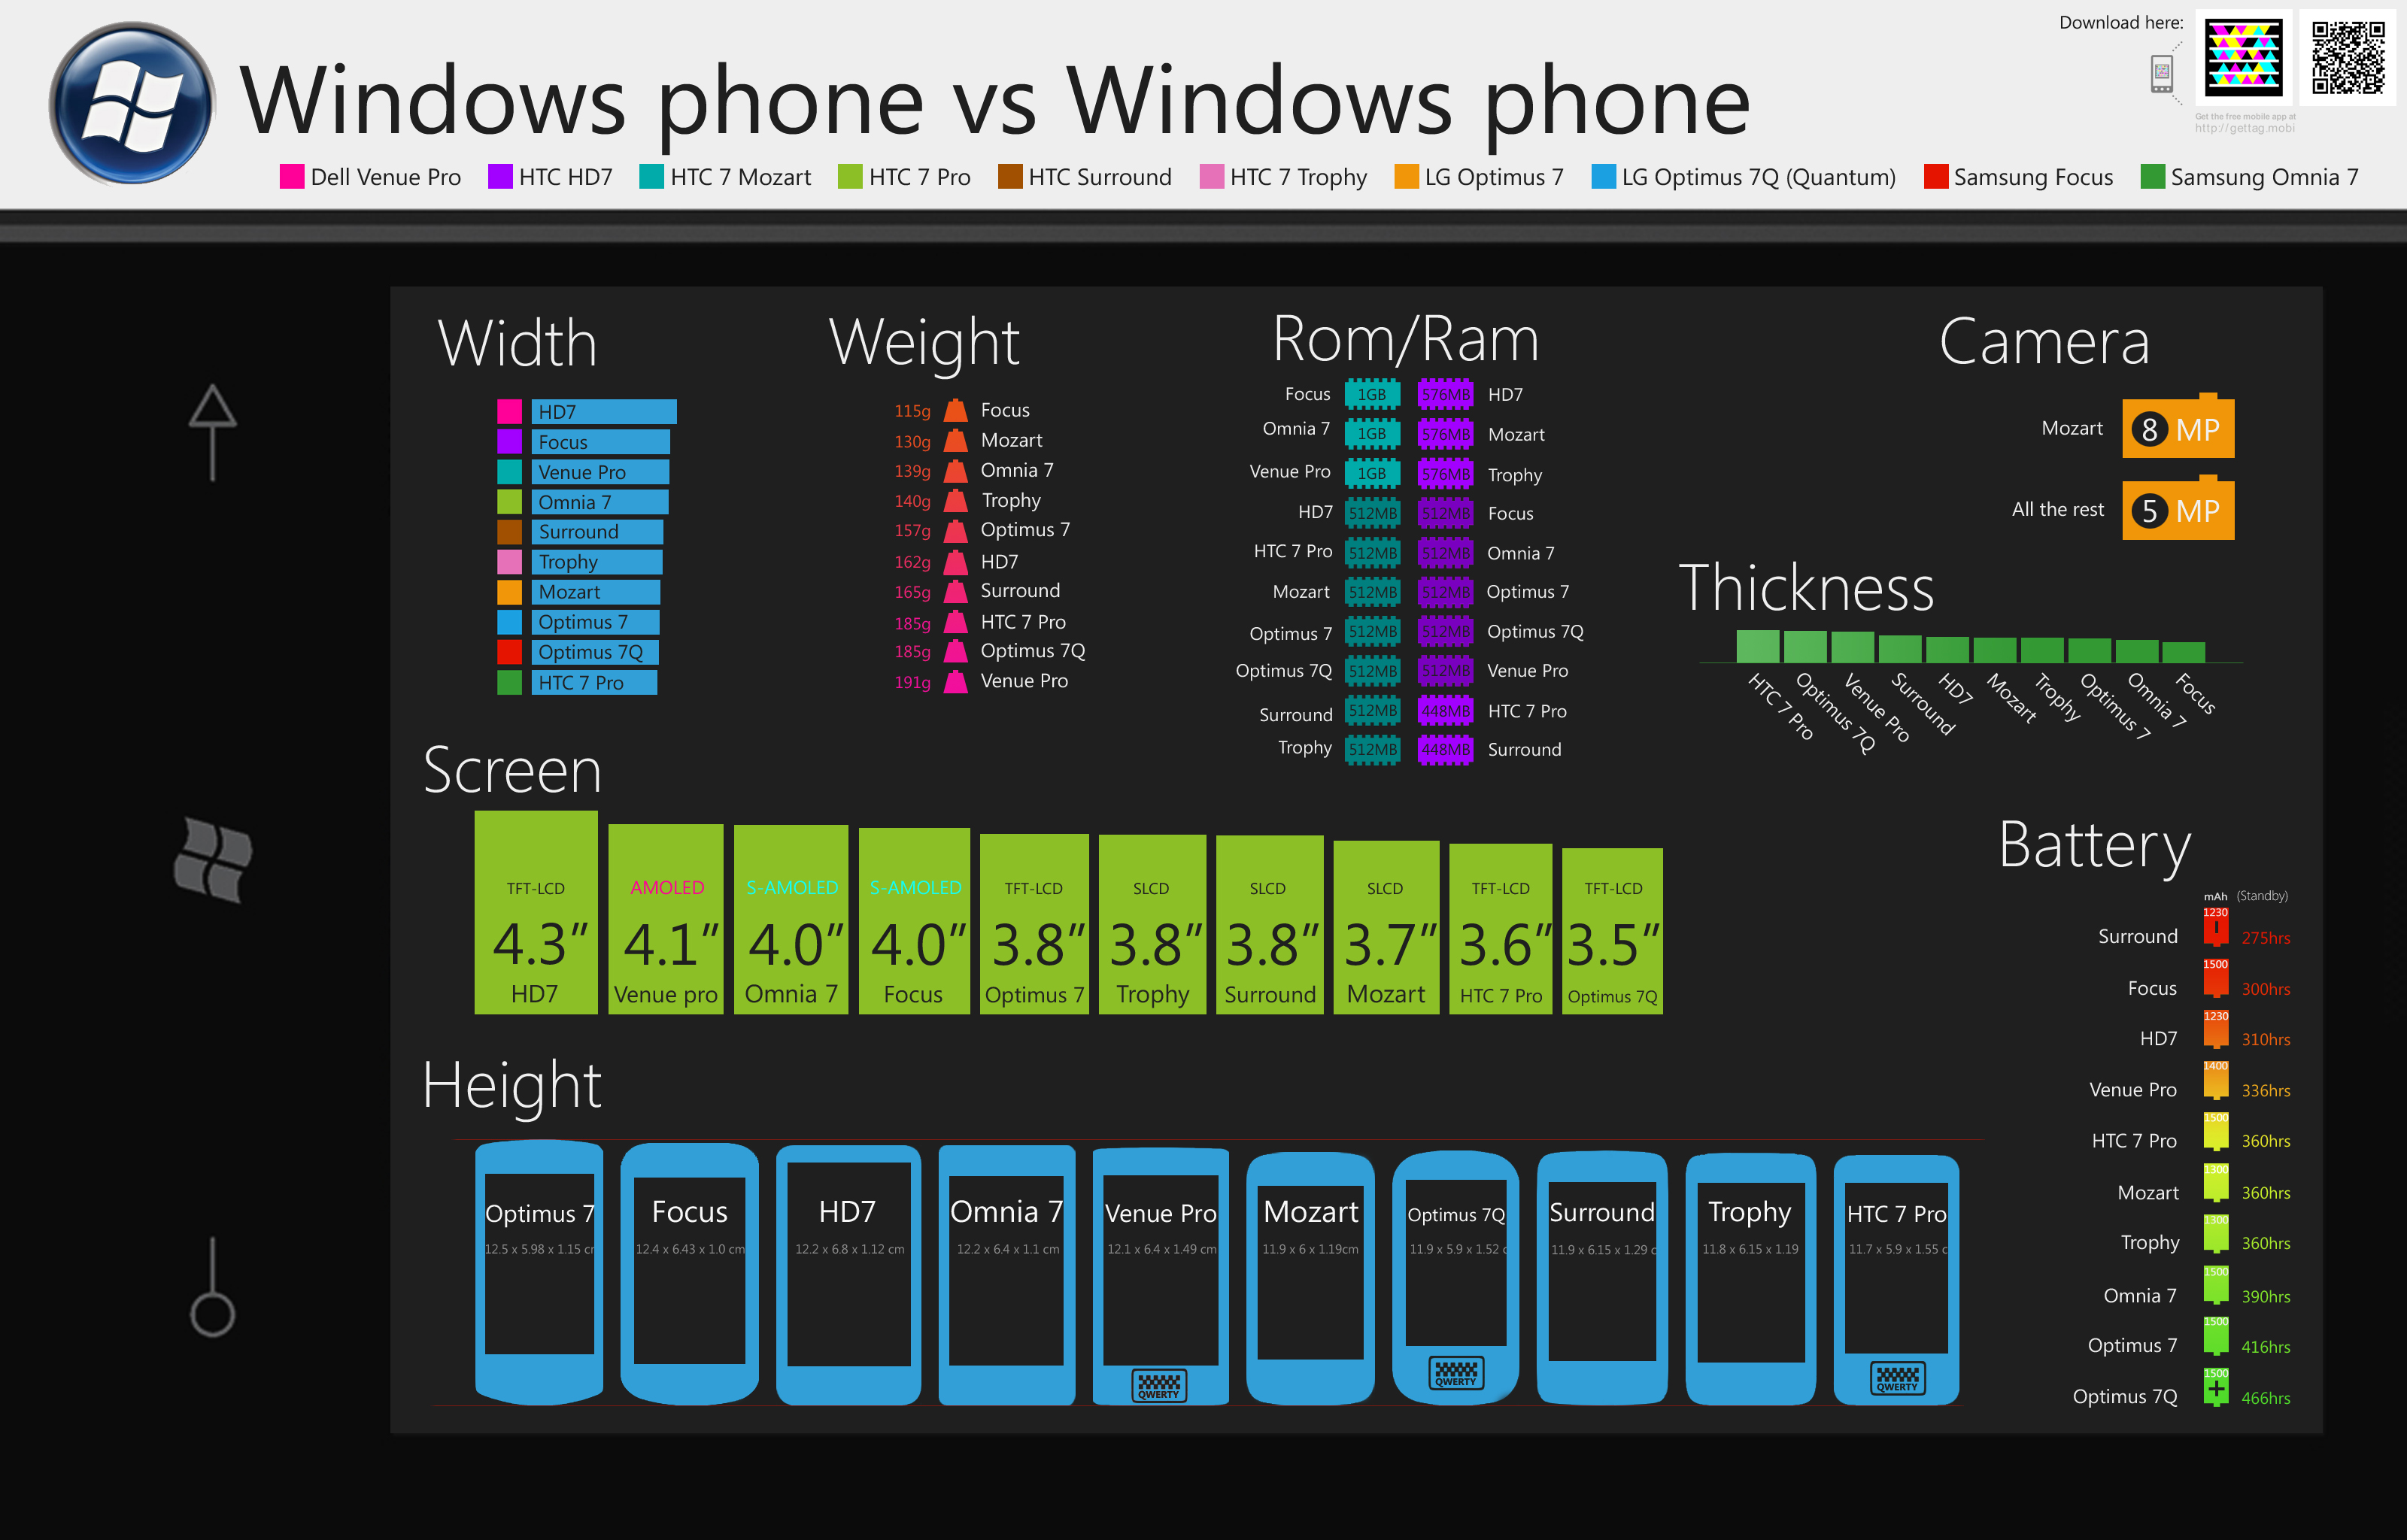 Windows Phone 7 device comparison chart